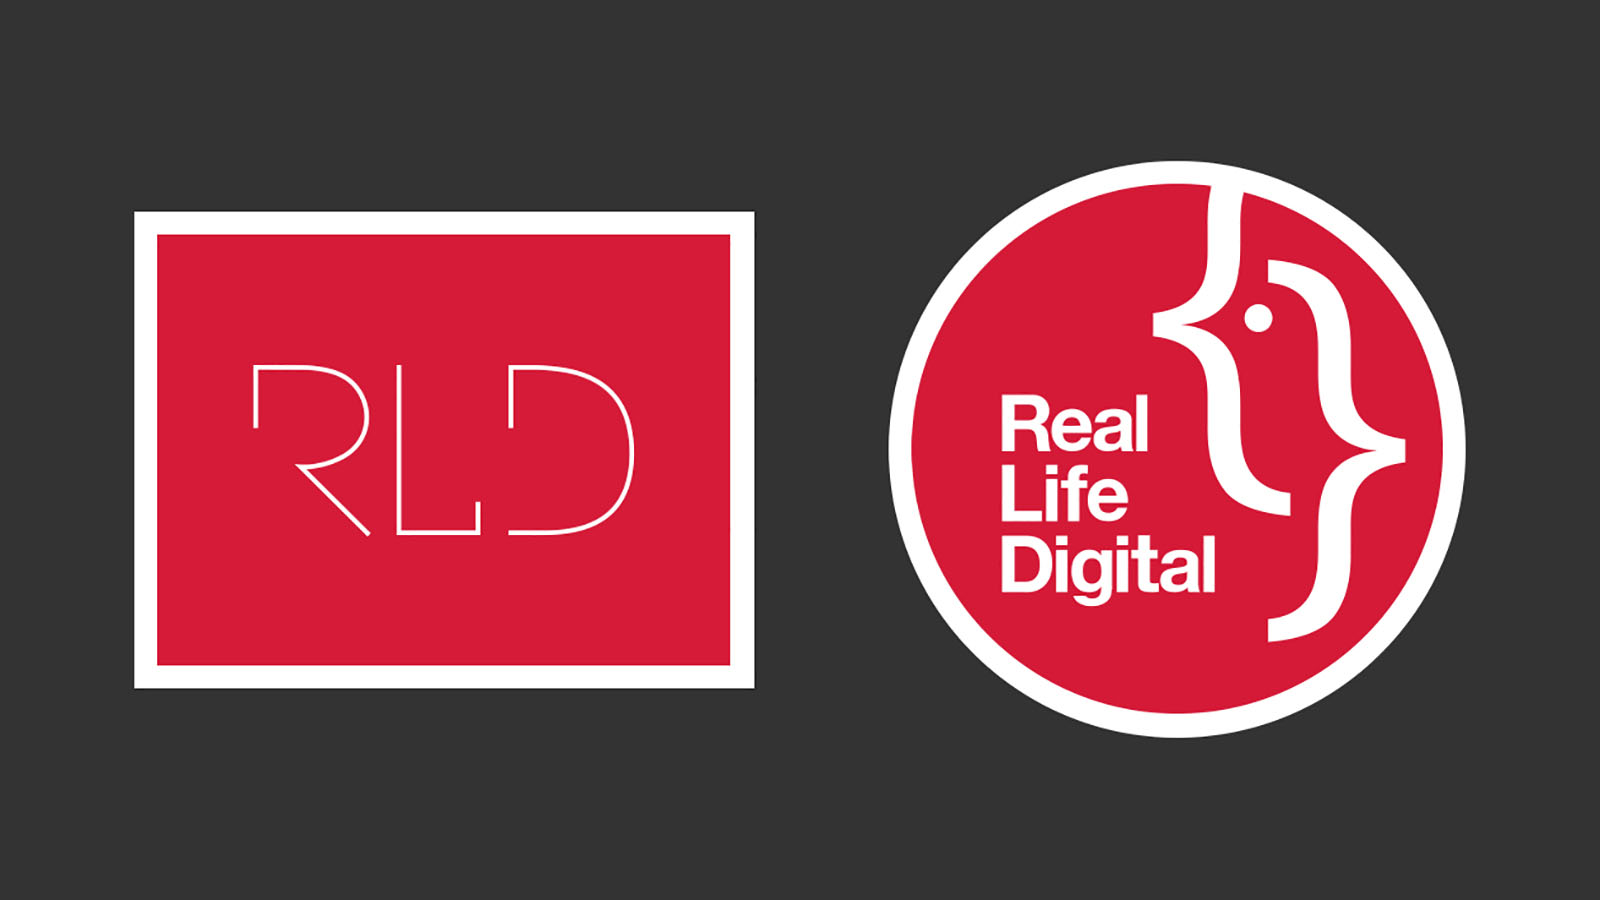 The old 'RLD' Real Life Design logo next to the new circular Real Life Digital logo on a dark grey background.